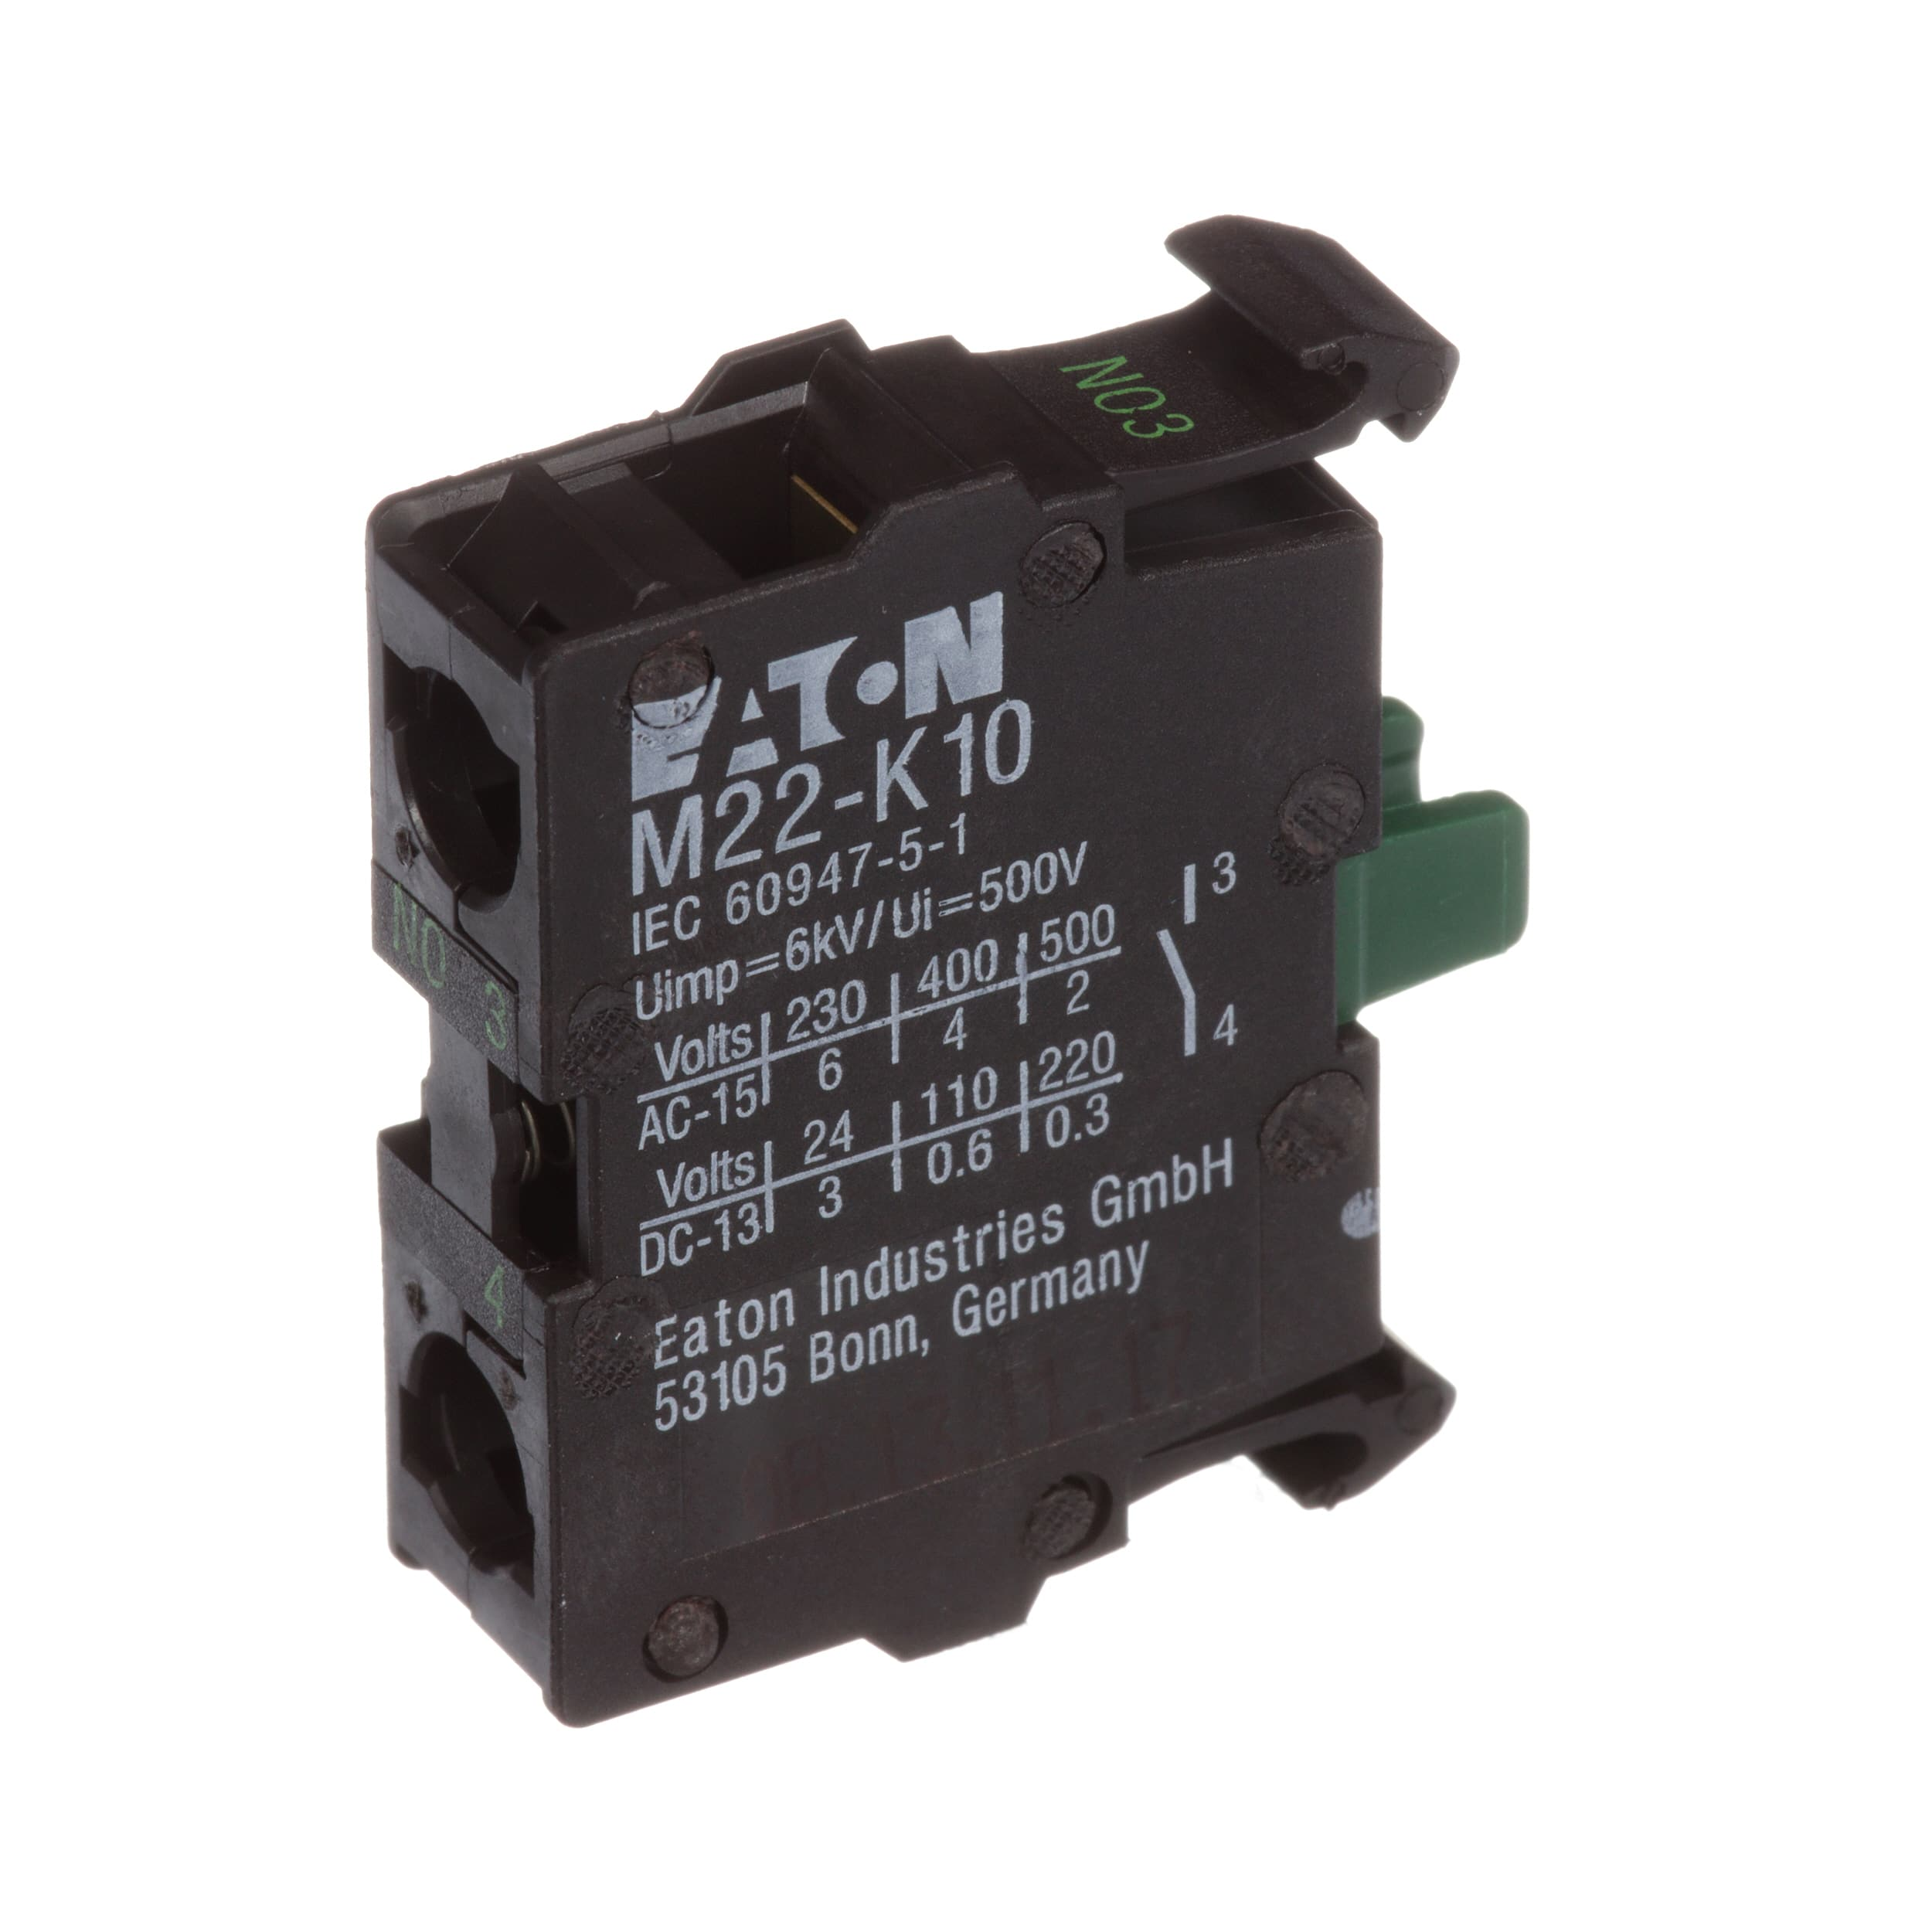 Eaton Cutler Hammer M22 K10 Switch Part Contact Block 1 No Electronic Selector Driven By Relays Screw Terminals Allied Electronics Automation